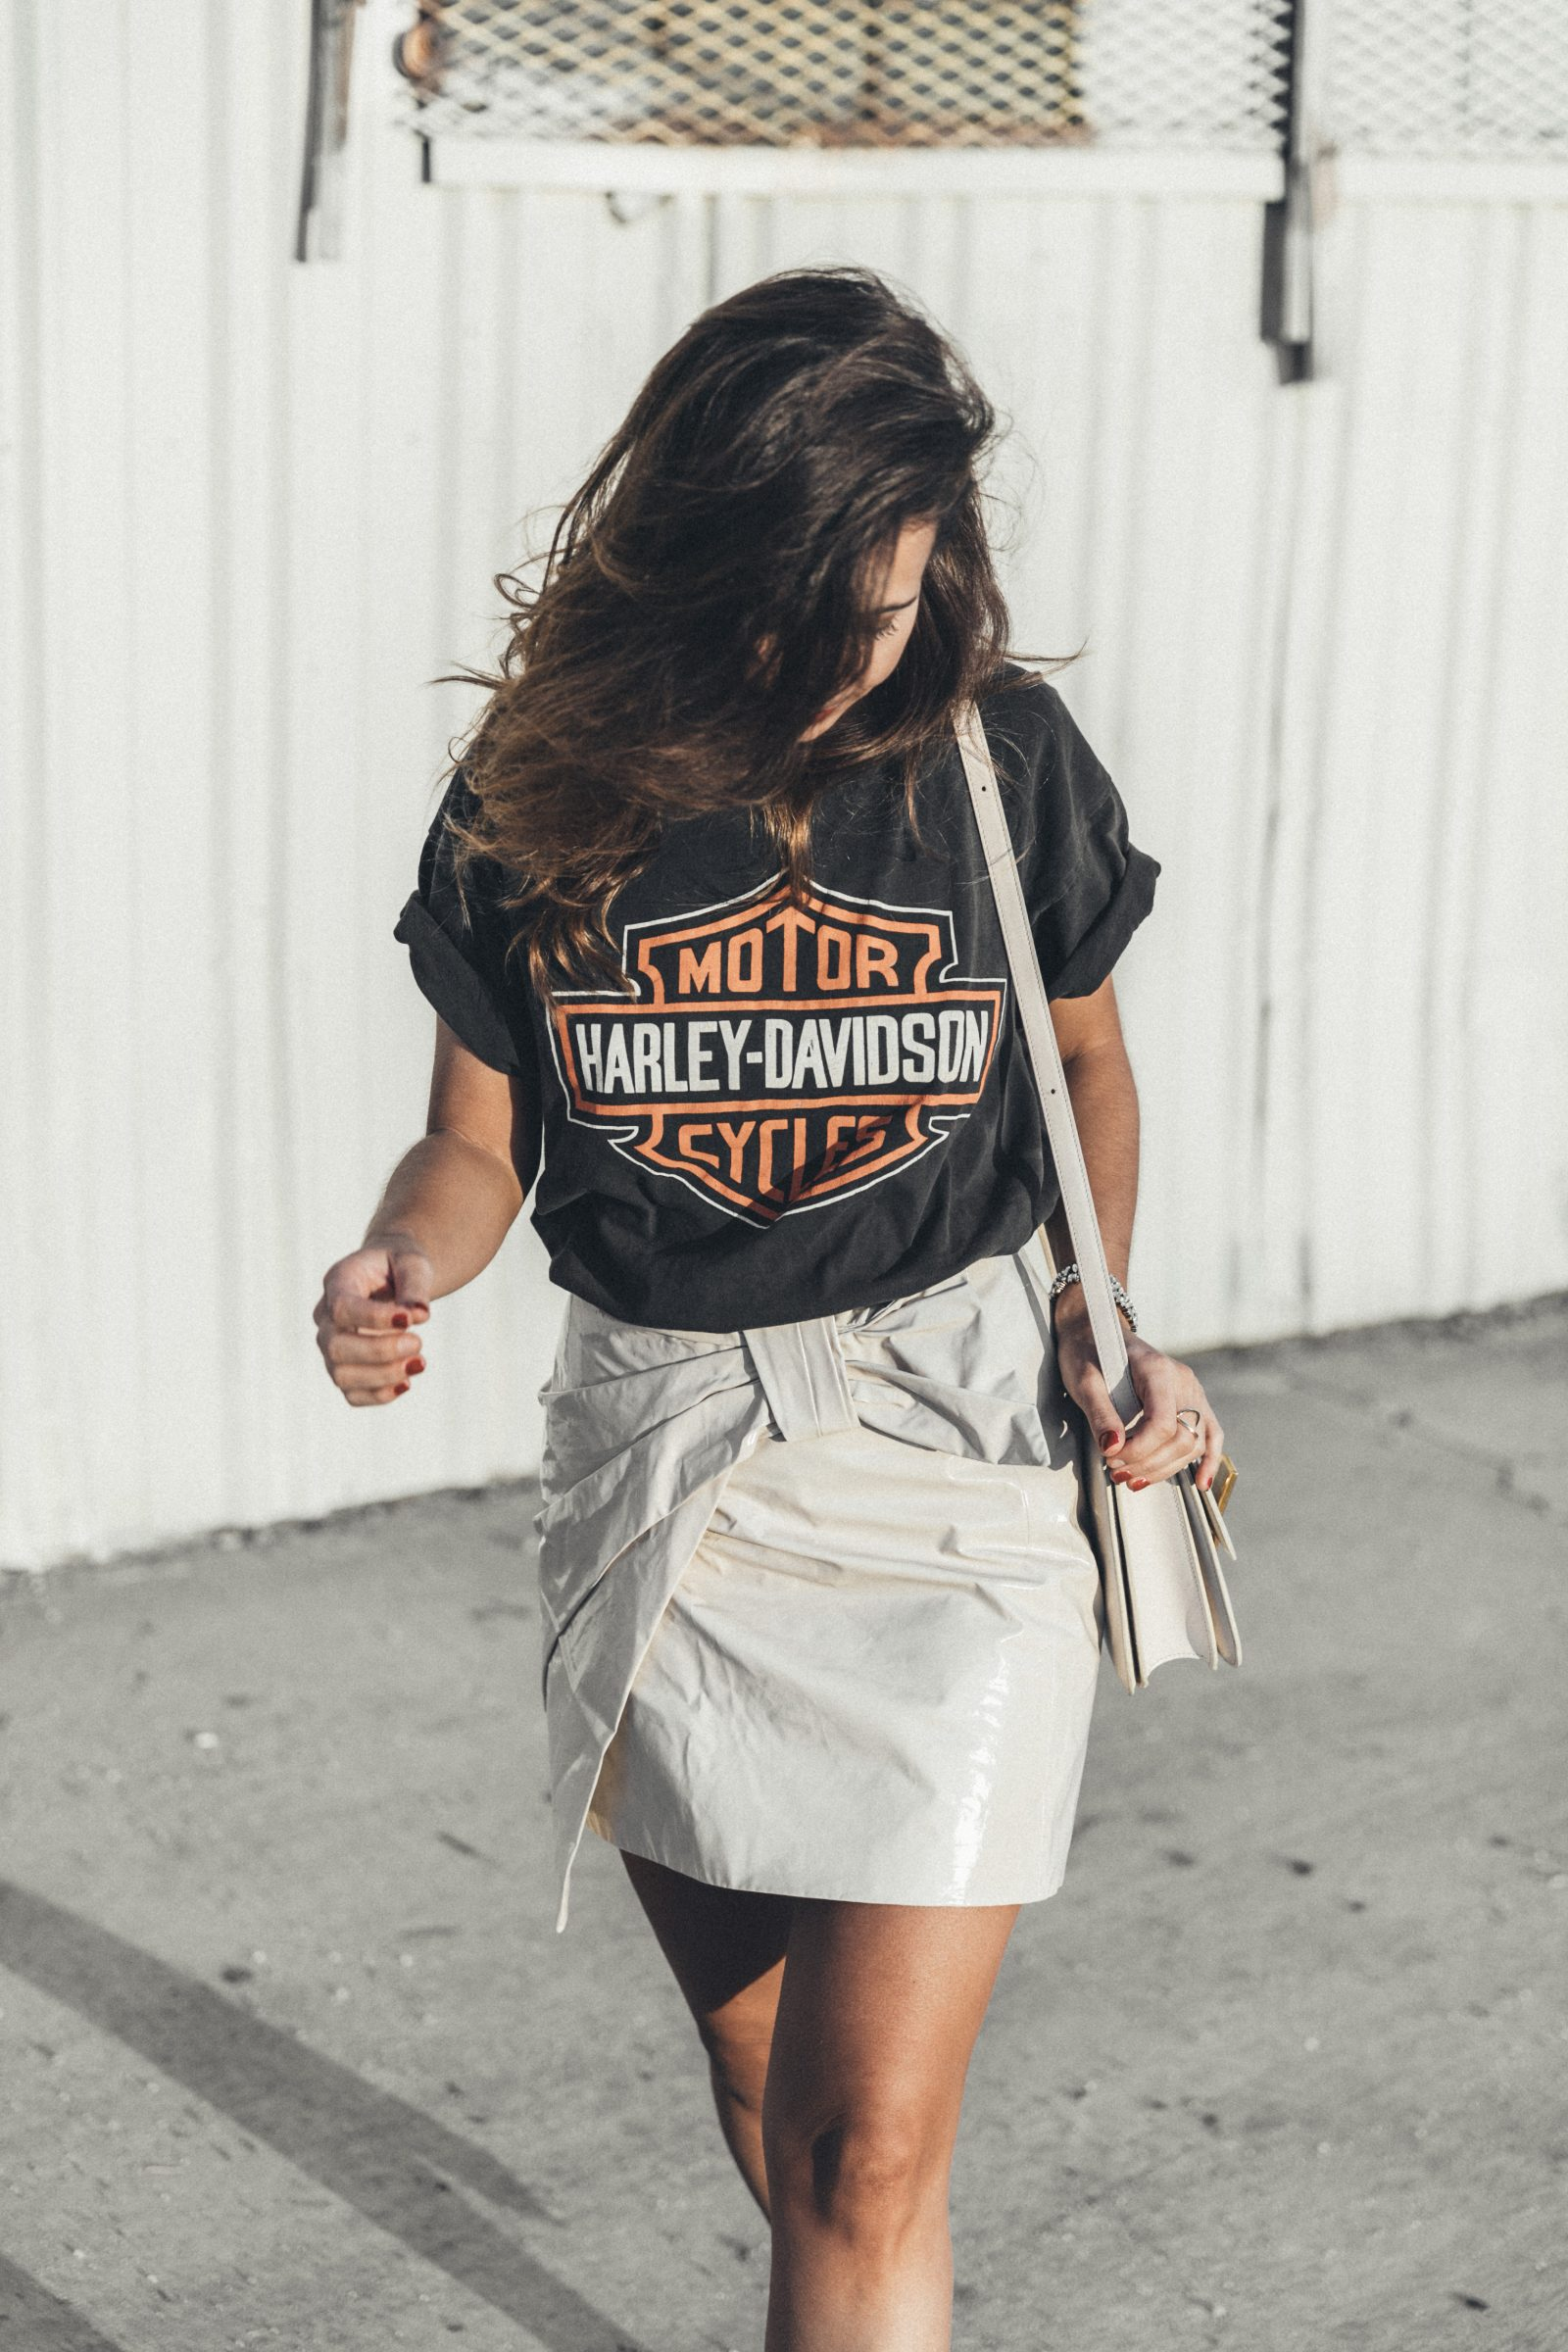 isabel_marant_skirt-harley_davison_vintage_tee-snake_boots-red_boots-bauble_bar-outifit-street_style-outfits-collage_vintage-84